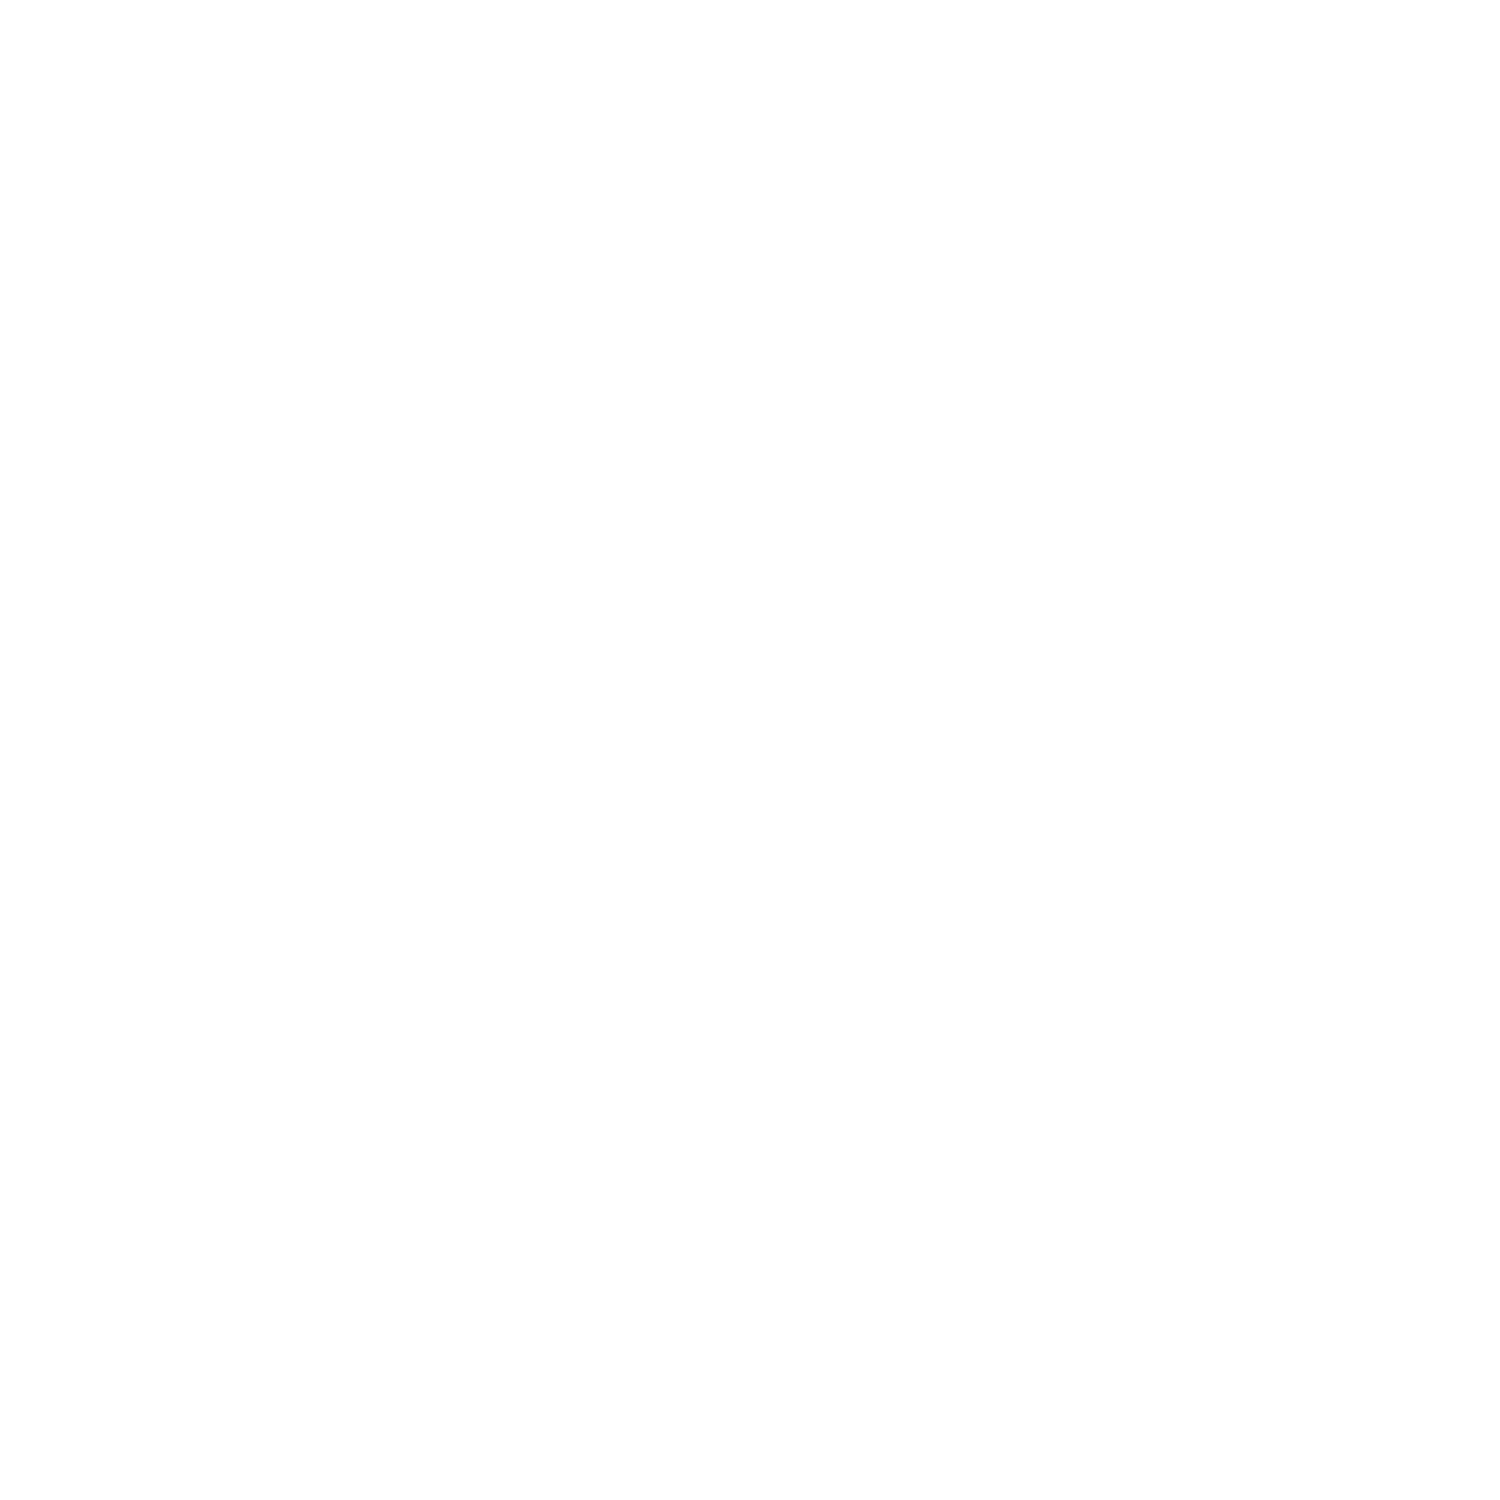 Wilder Coffee Supply